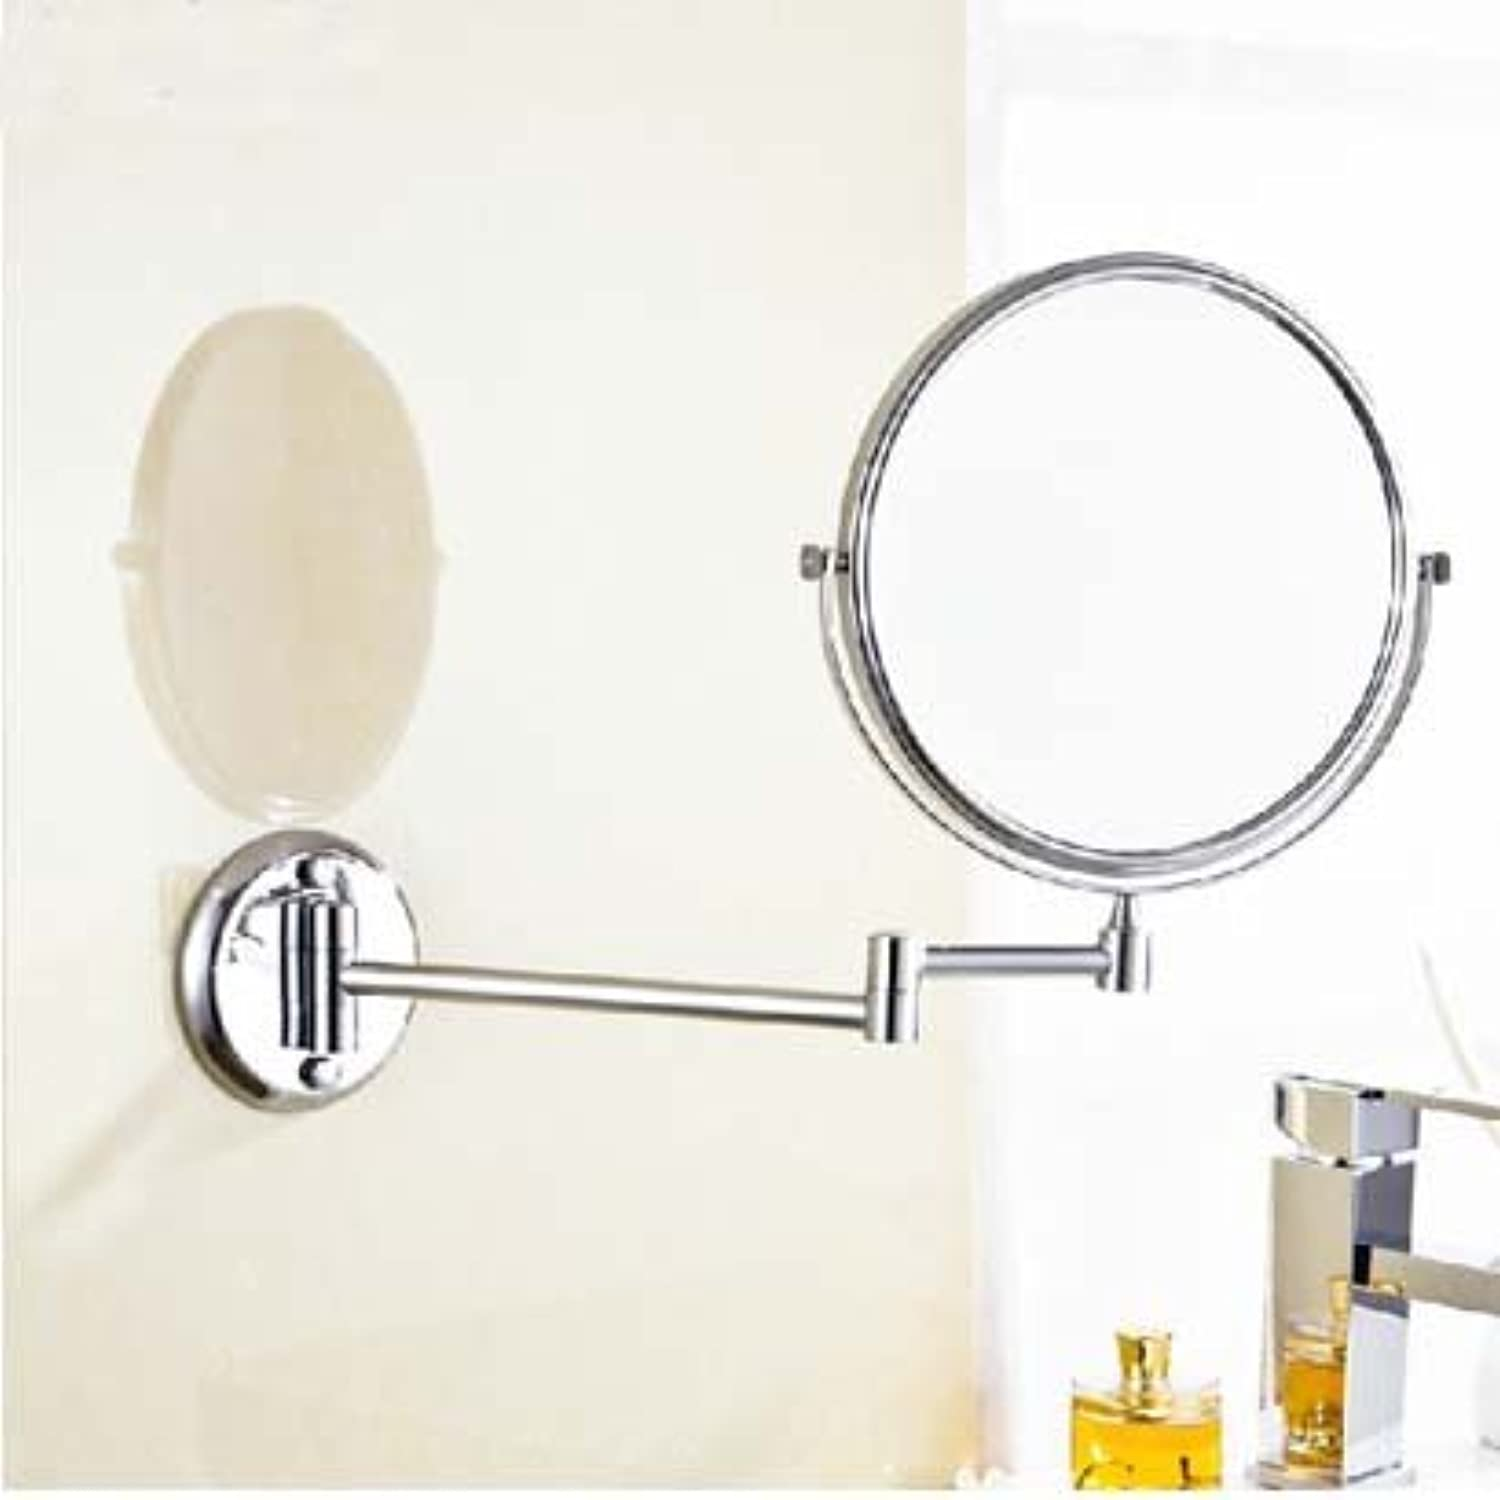 Wide copper folding mirror-8 European-style gold-plated bathroom mirror antique wall mounted retractable mirror-8 inch Mirror chrome